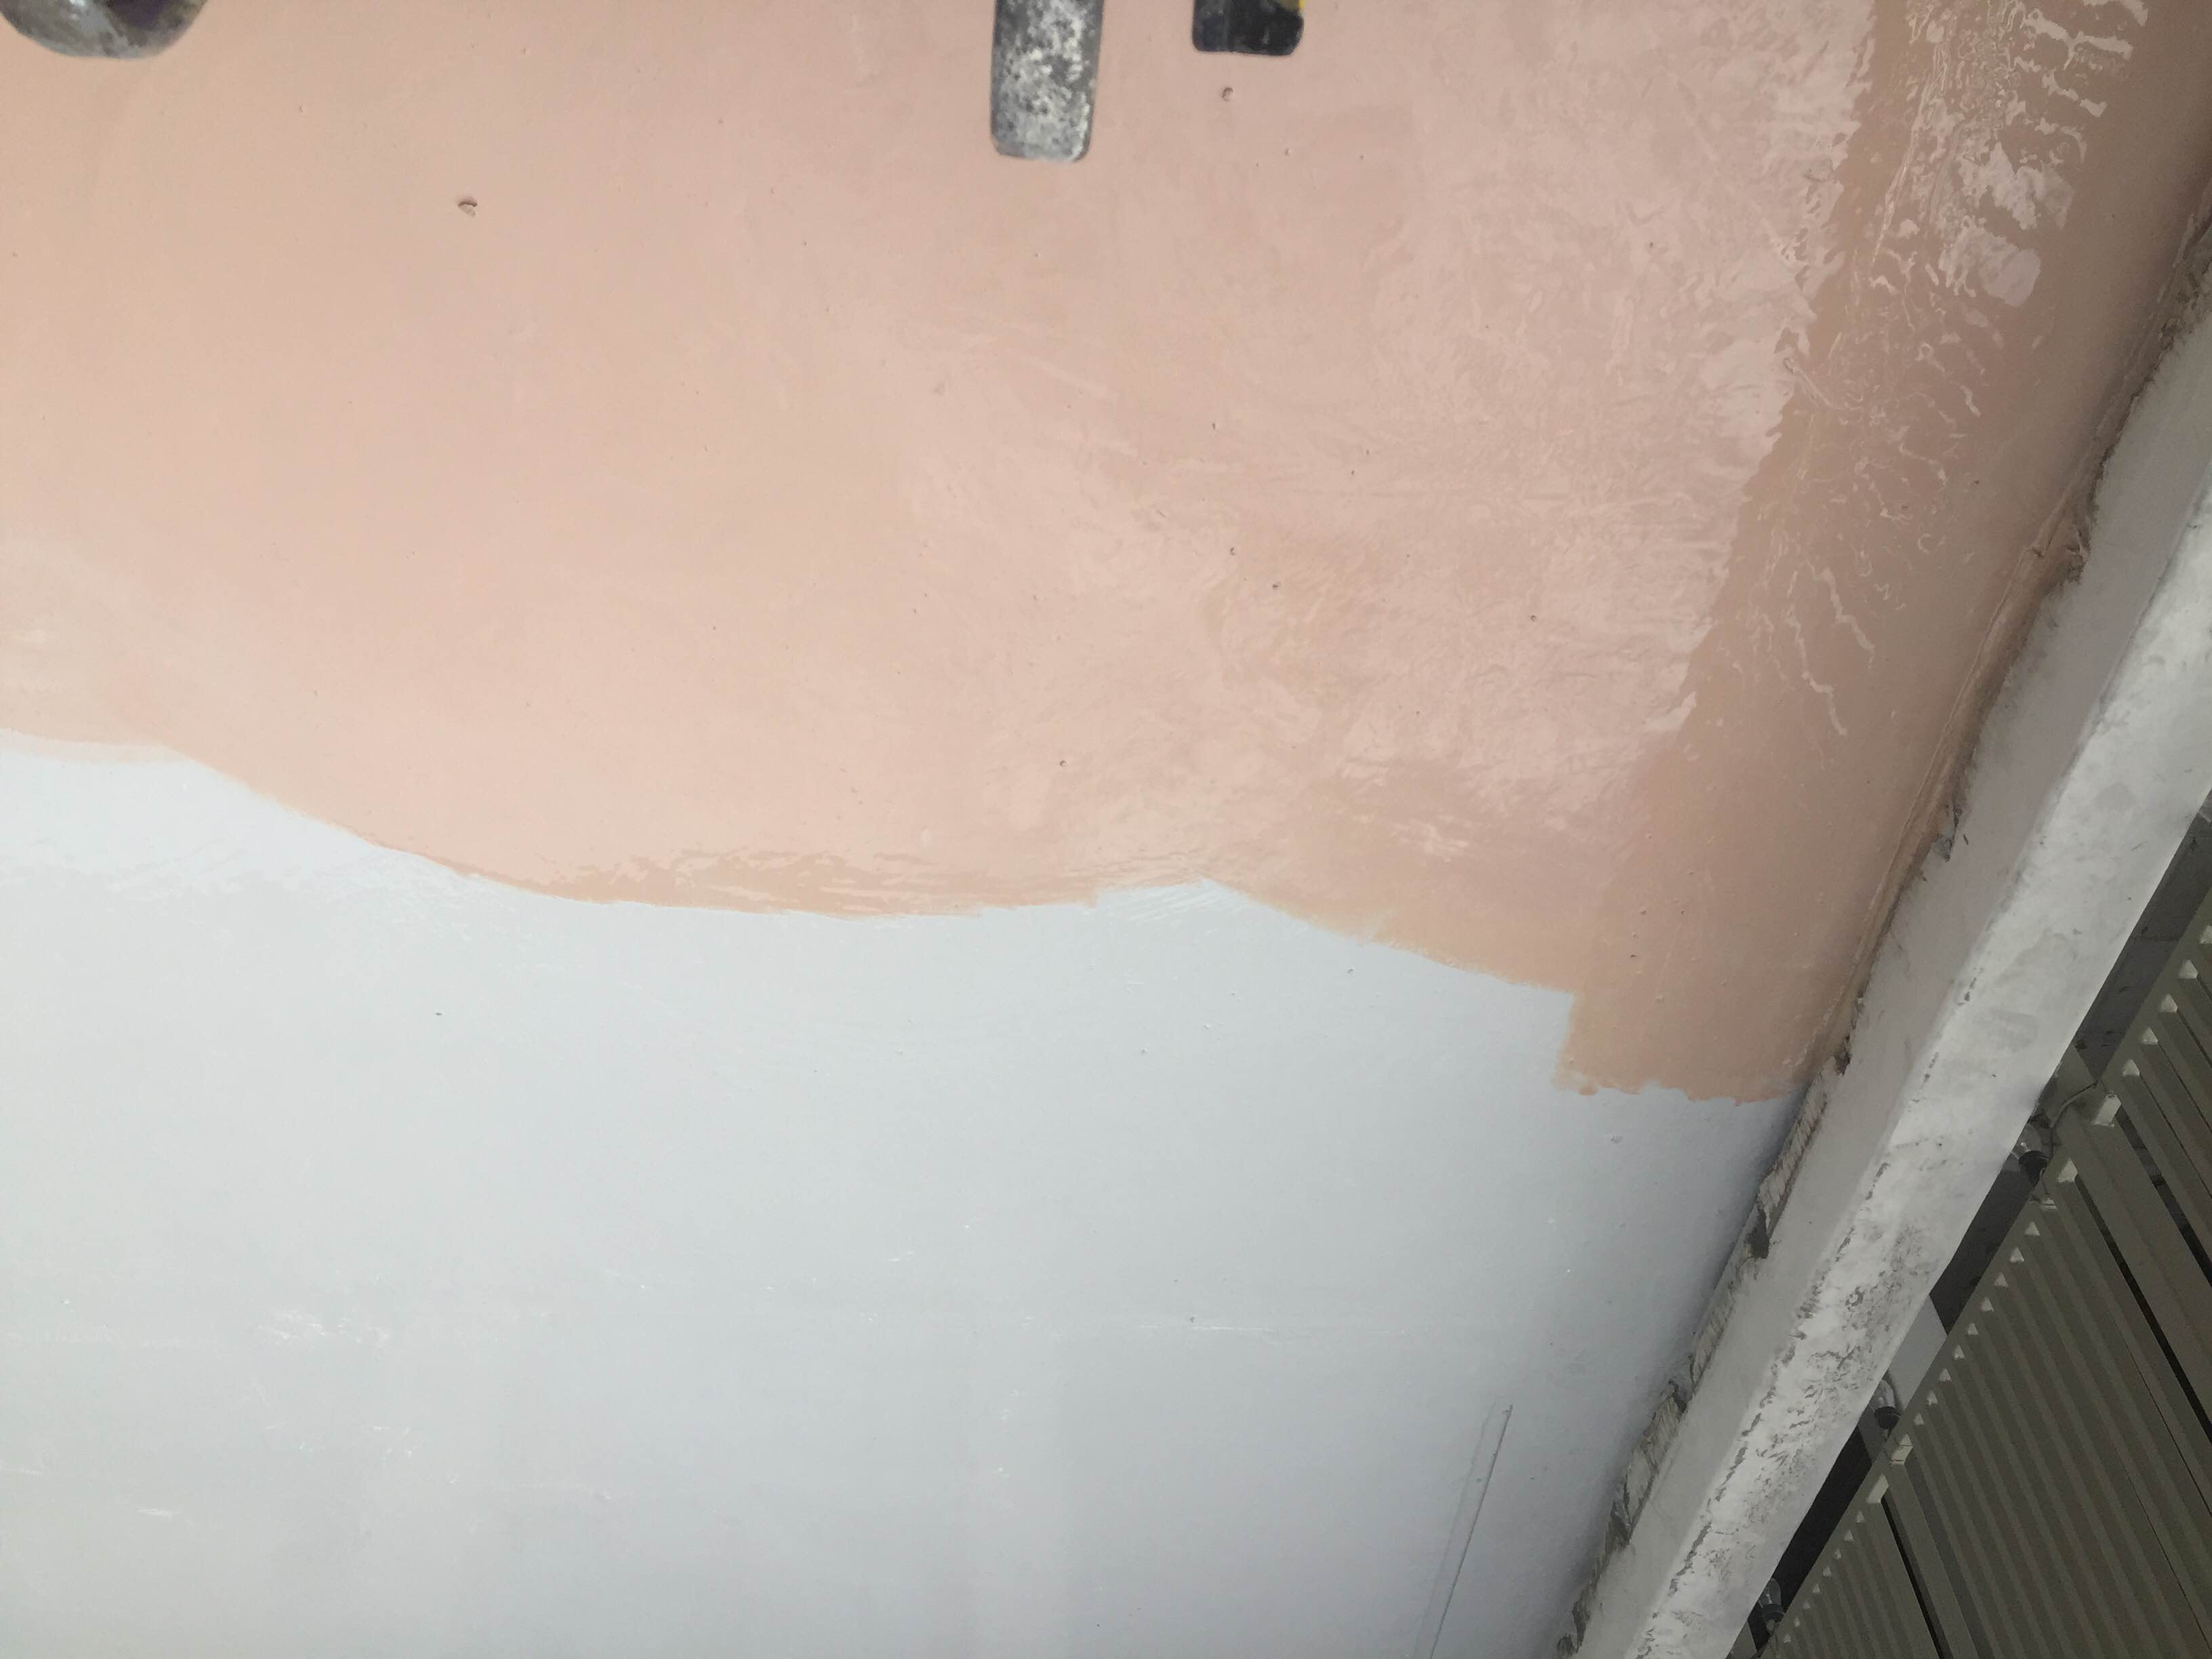 waterproofing coating work in progress